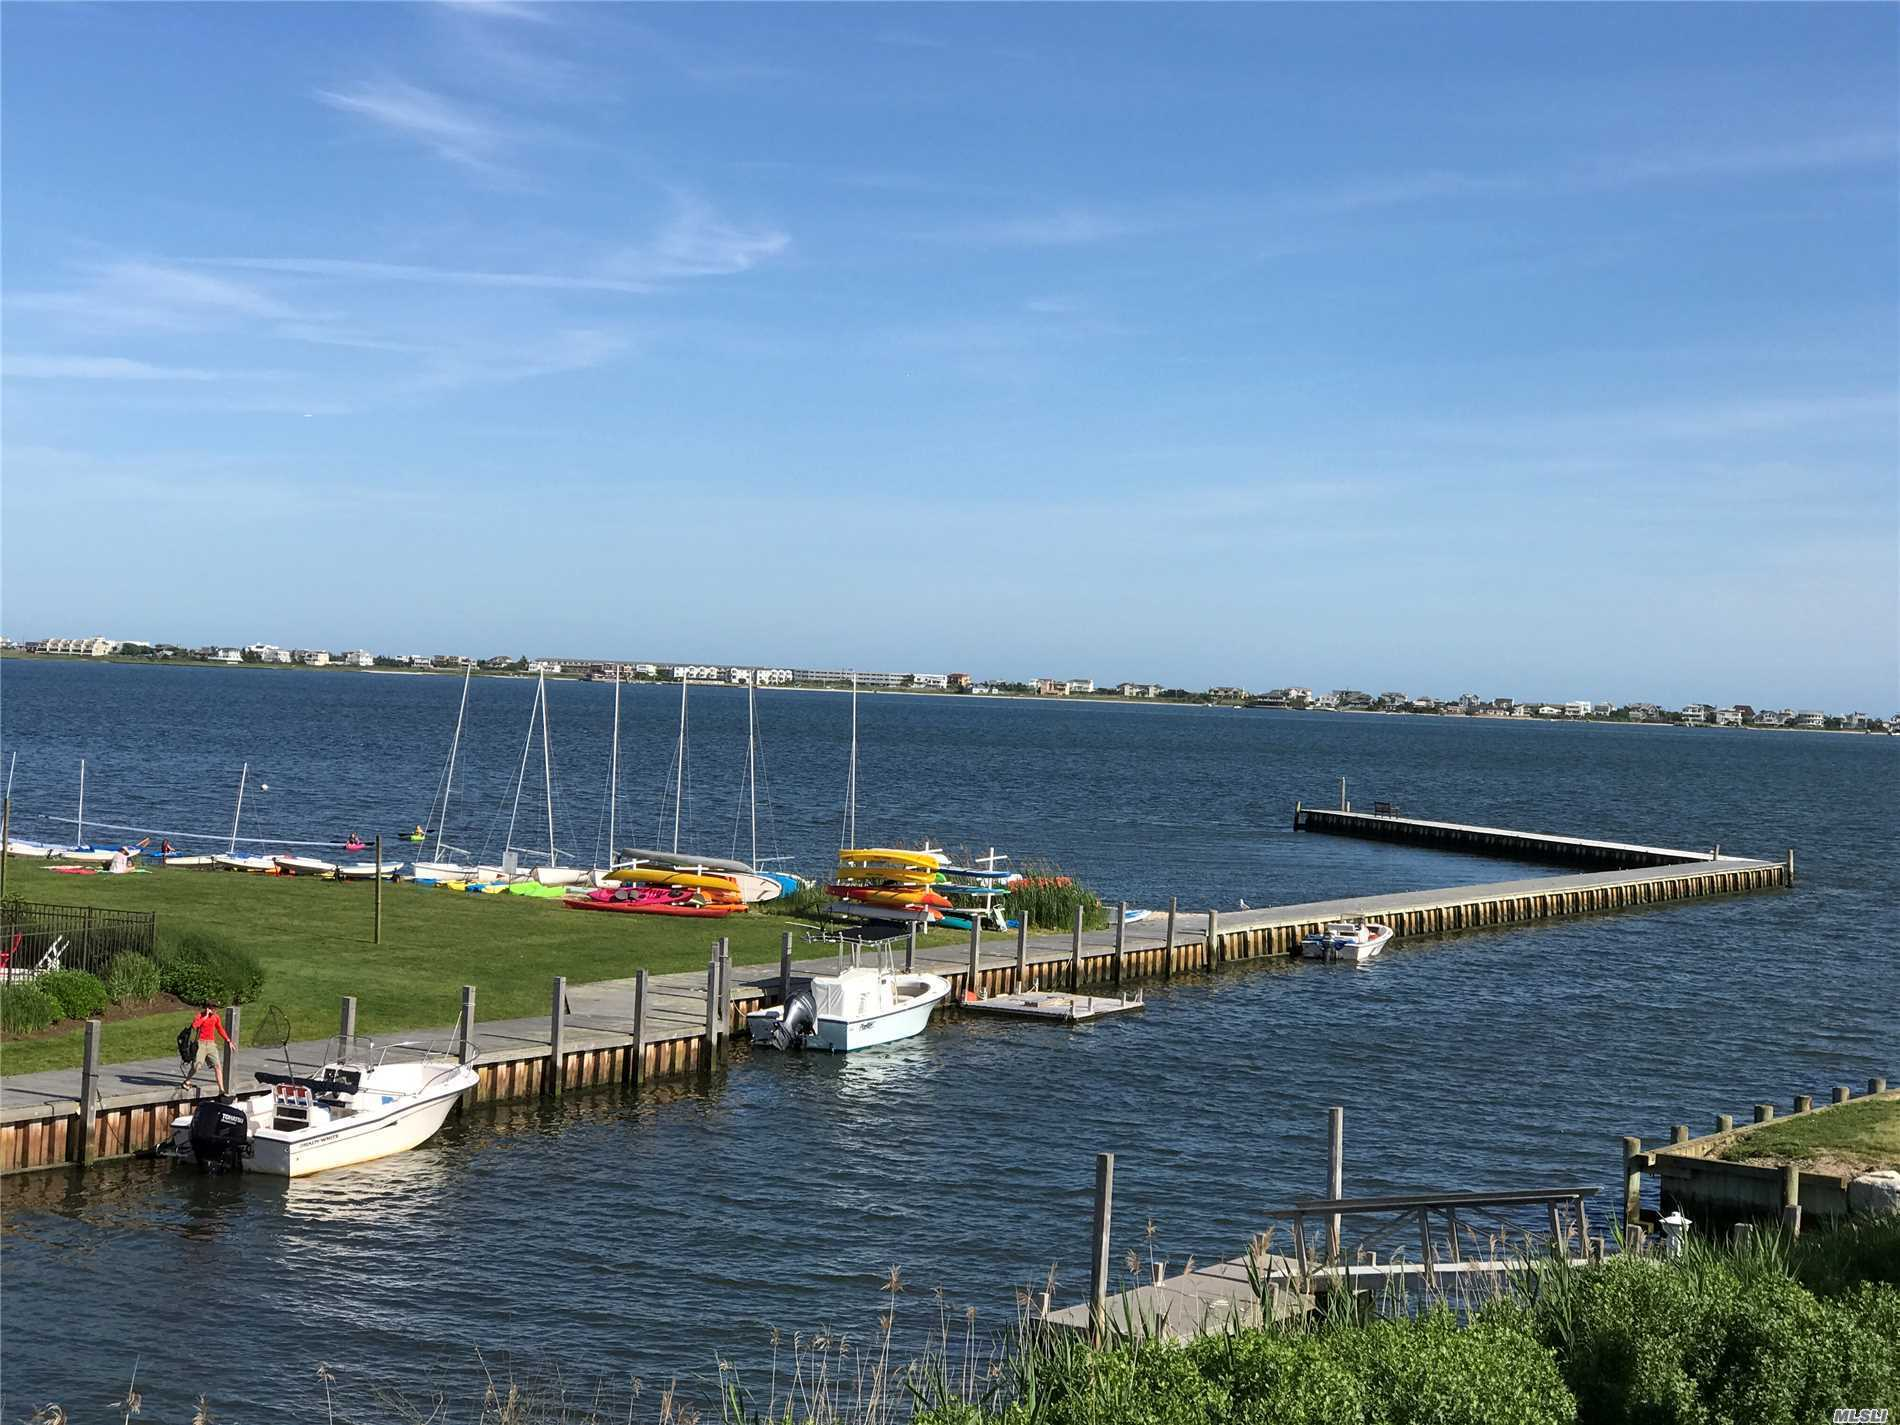 Amazing Water Views...Private Dock On Canal Leads To Moriches Bay. 100 Feet Of Bulk Heading. Views Of Moriches Bay Looking Over To Dune Road.  Great Home For Boating Enthusiasts Or Those Appreciating The Serenity Of Waterfront Property,  Low Taxes,  Gunite Pool And Expansive Deck. Potential For Making This Your Dream Home. Bring Your Builder Or Architect. Westhampton Beach And Remsenburg Schools. Rogers Beach Are Short Distance Away. Sunrise In The Morning. Spectacular Sunsets!